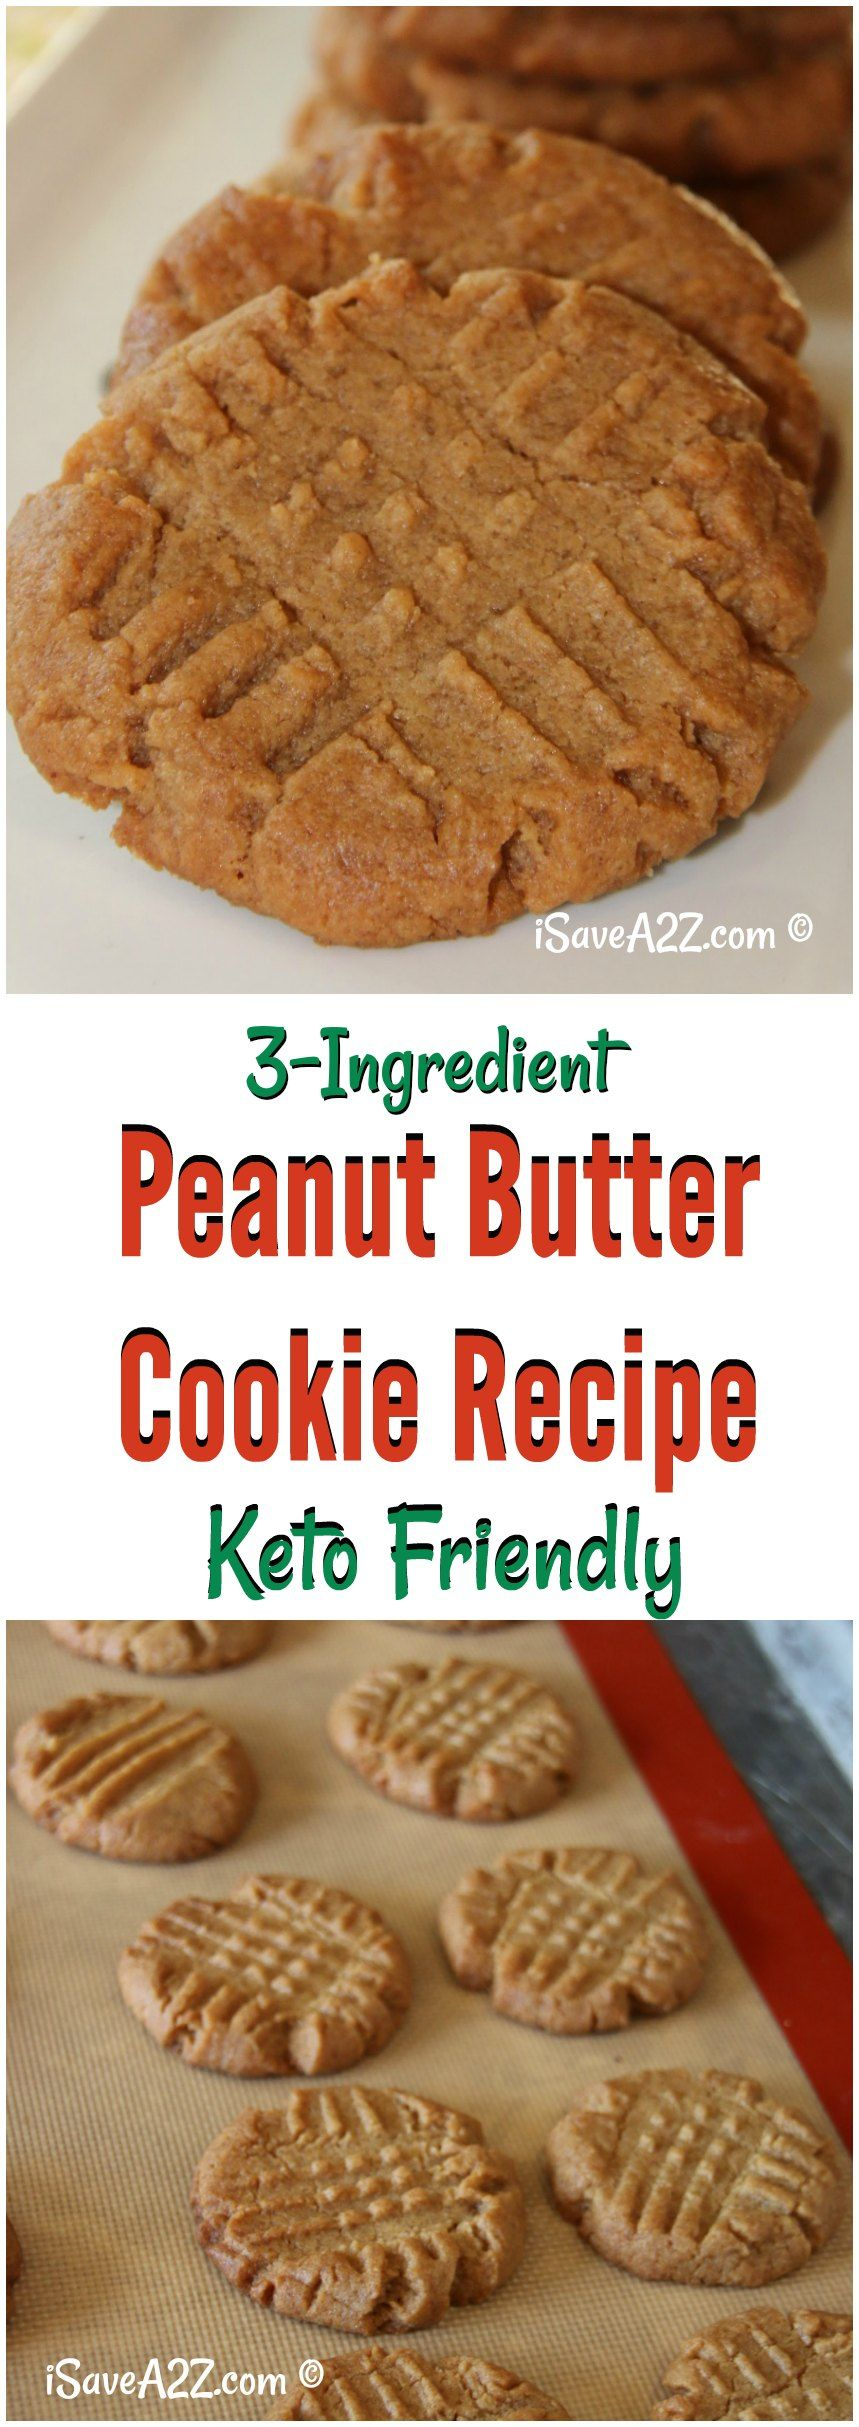 SUPER POPULAR Keto Cookie Recipe with rave reviews! #ketodesserts